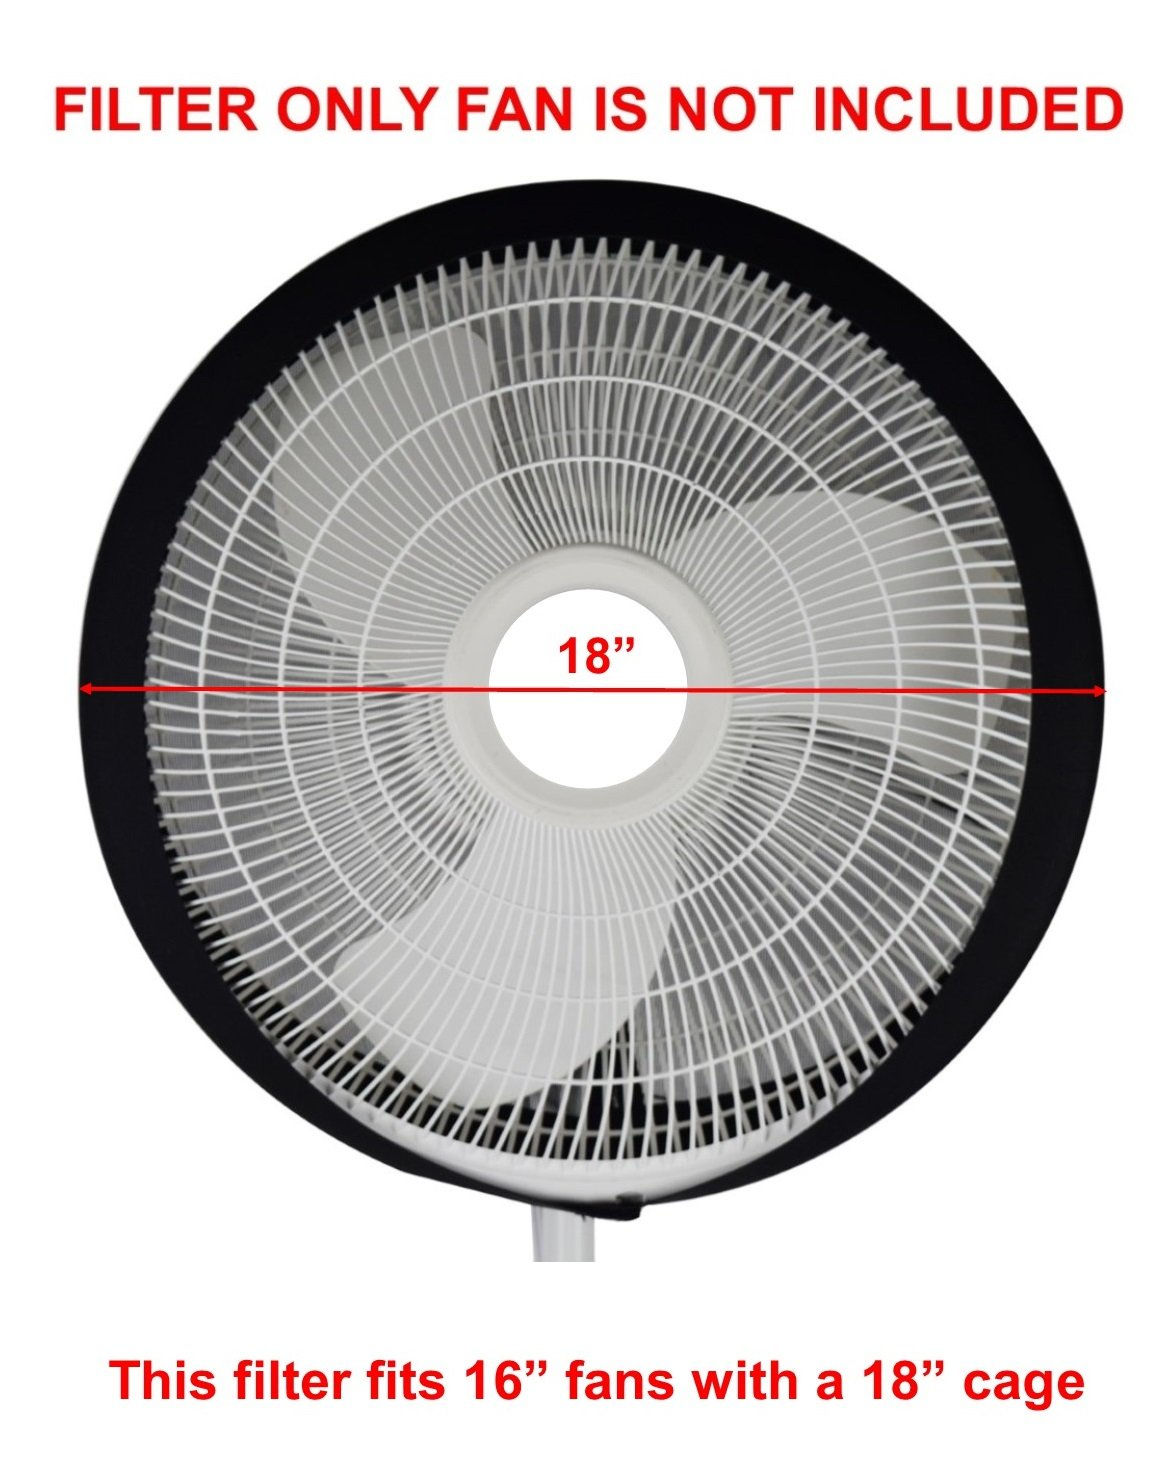 Amazon.com: New Fan Buddy Fan Filter with Replaceable Activated Carbon Layers - Made for 16